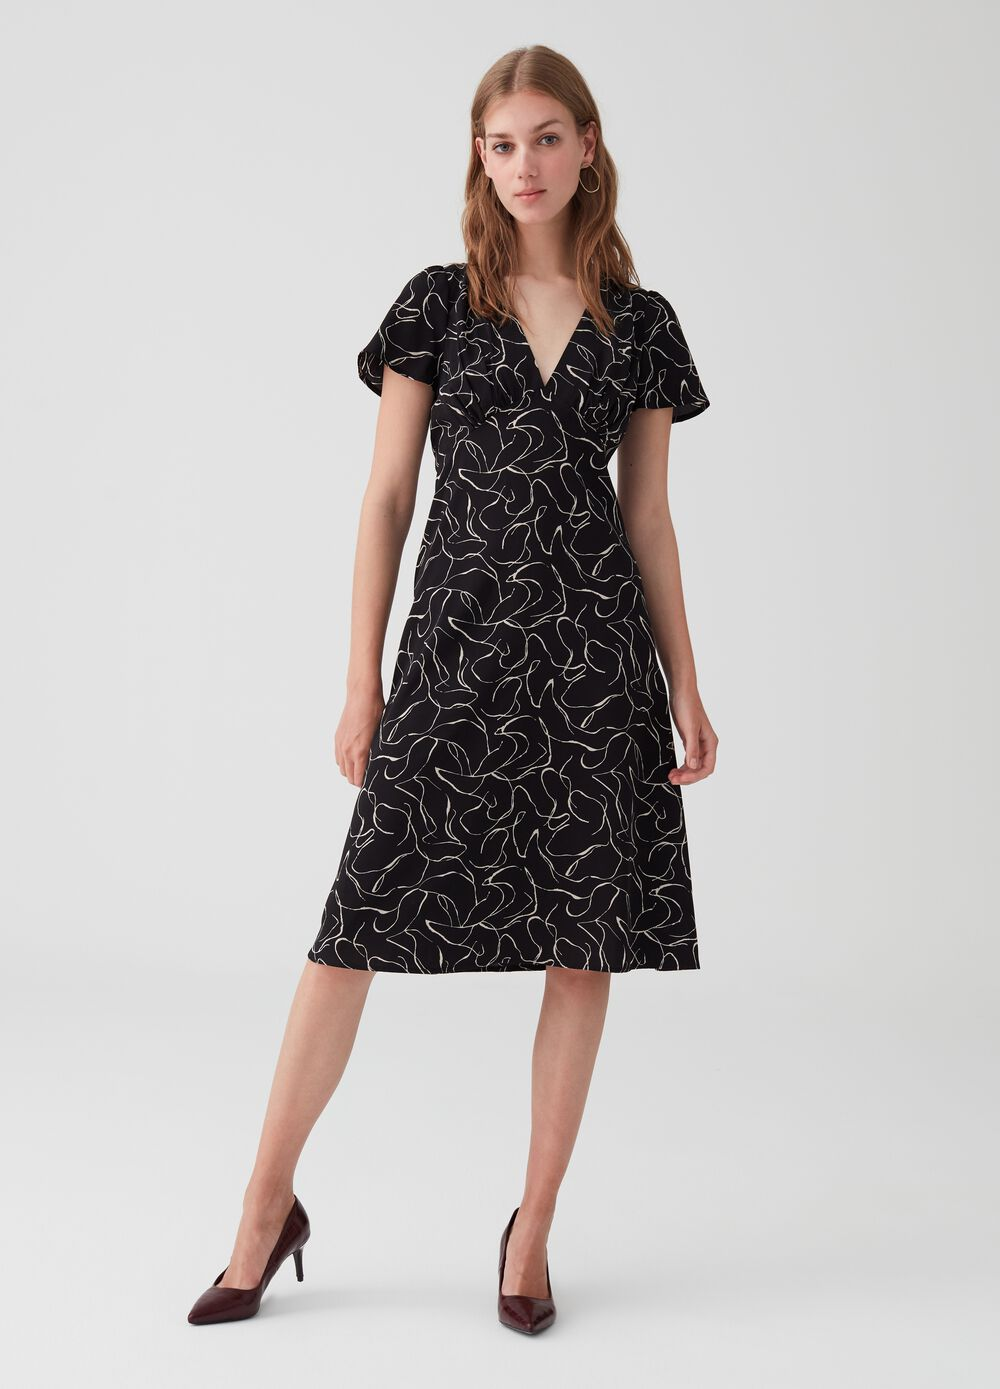 V-neck, short-sleeved patterned dress